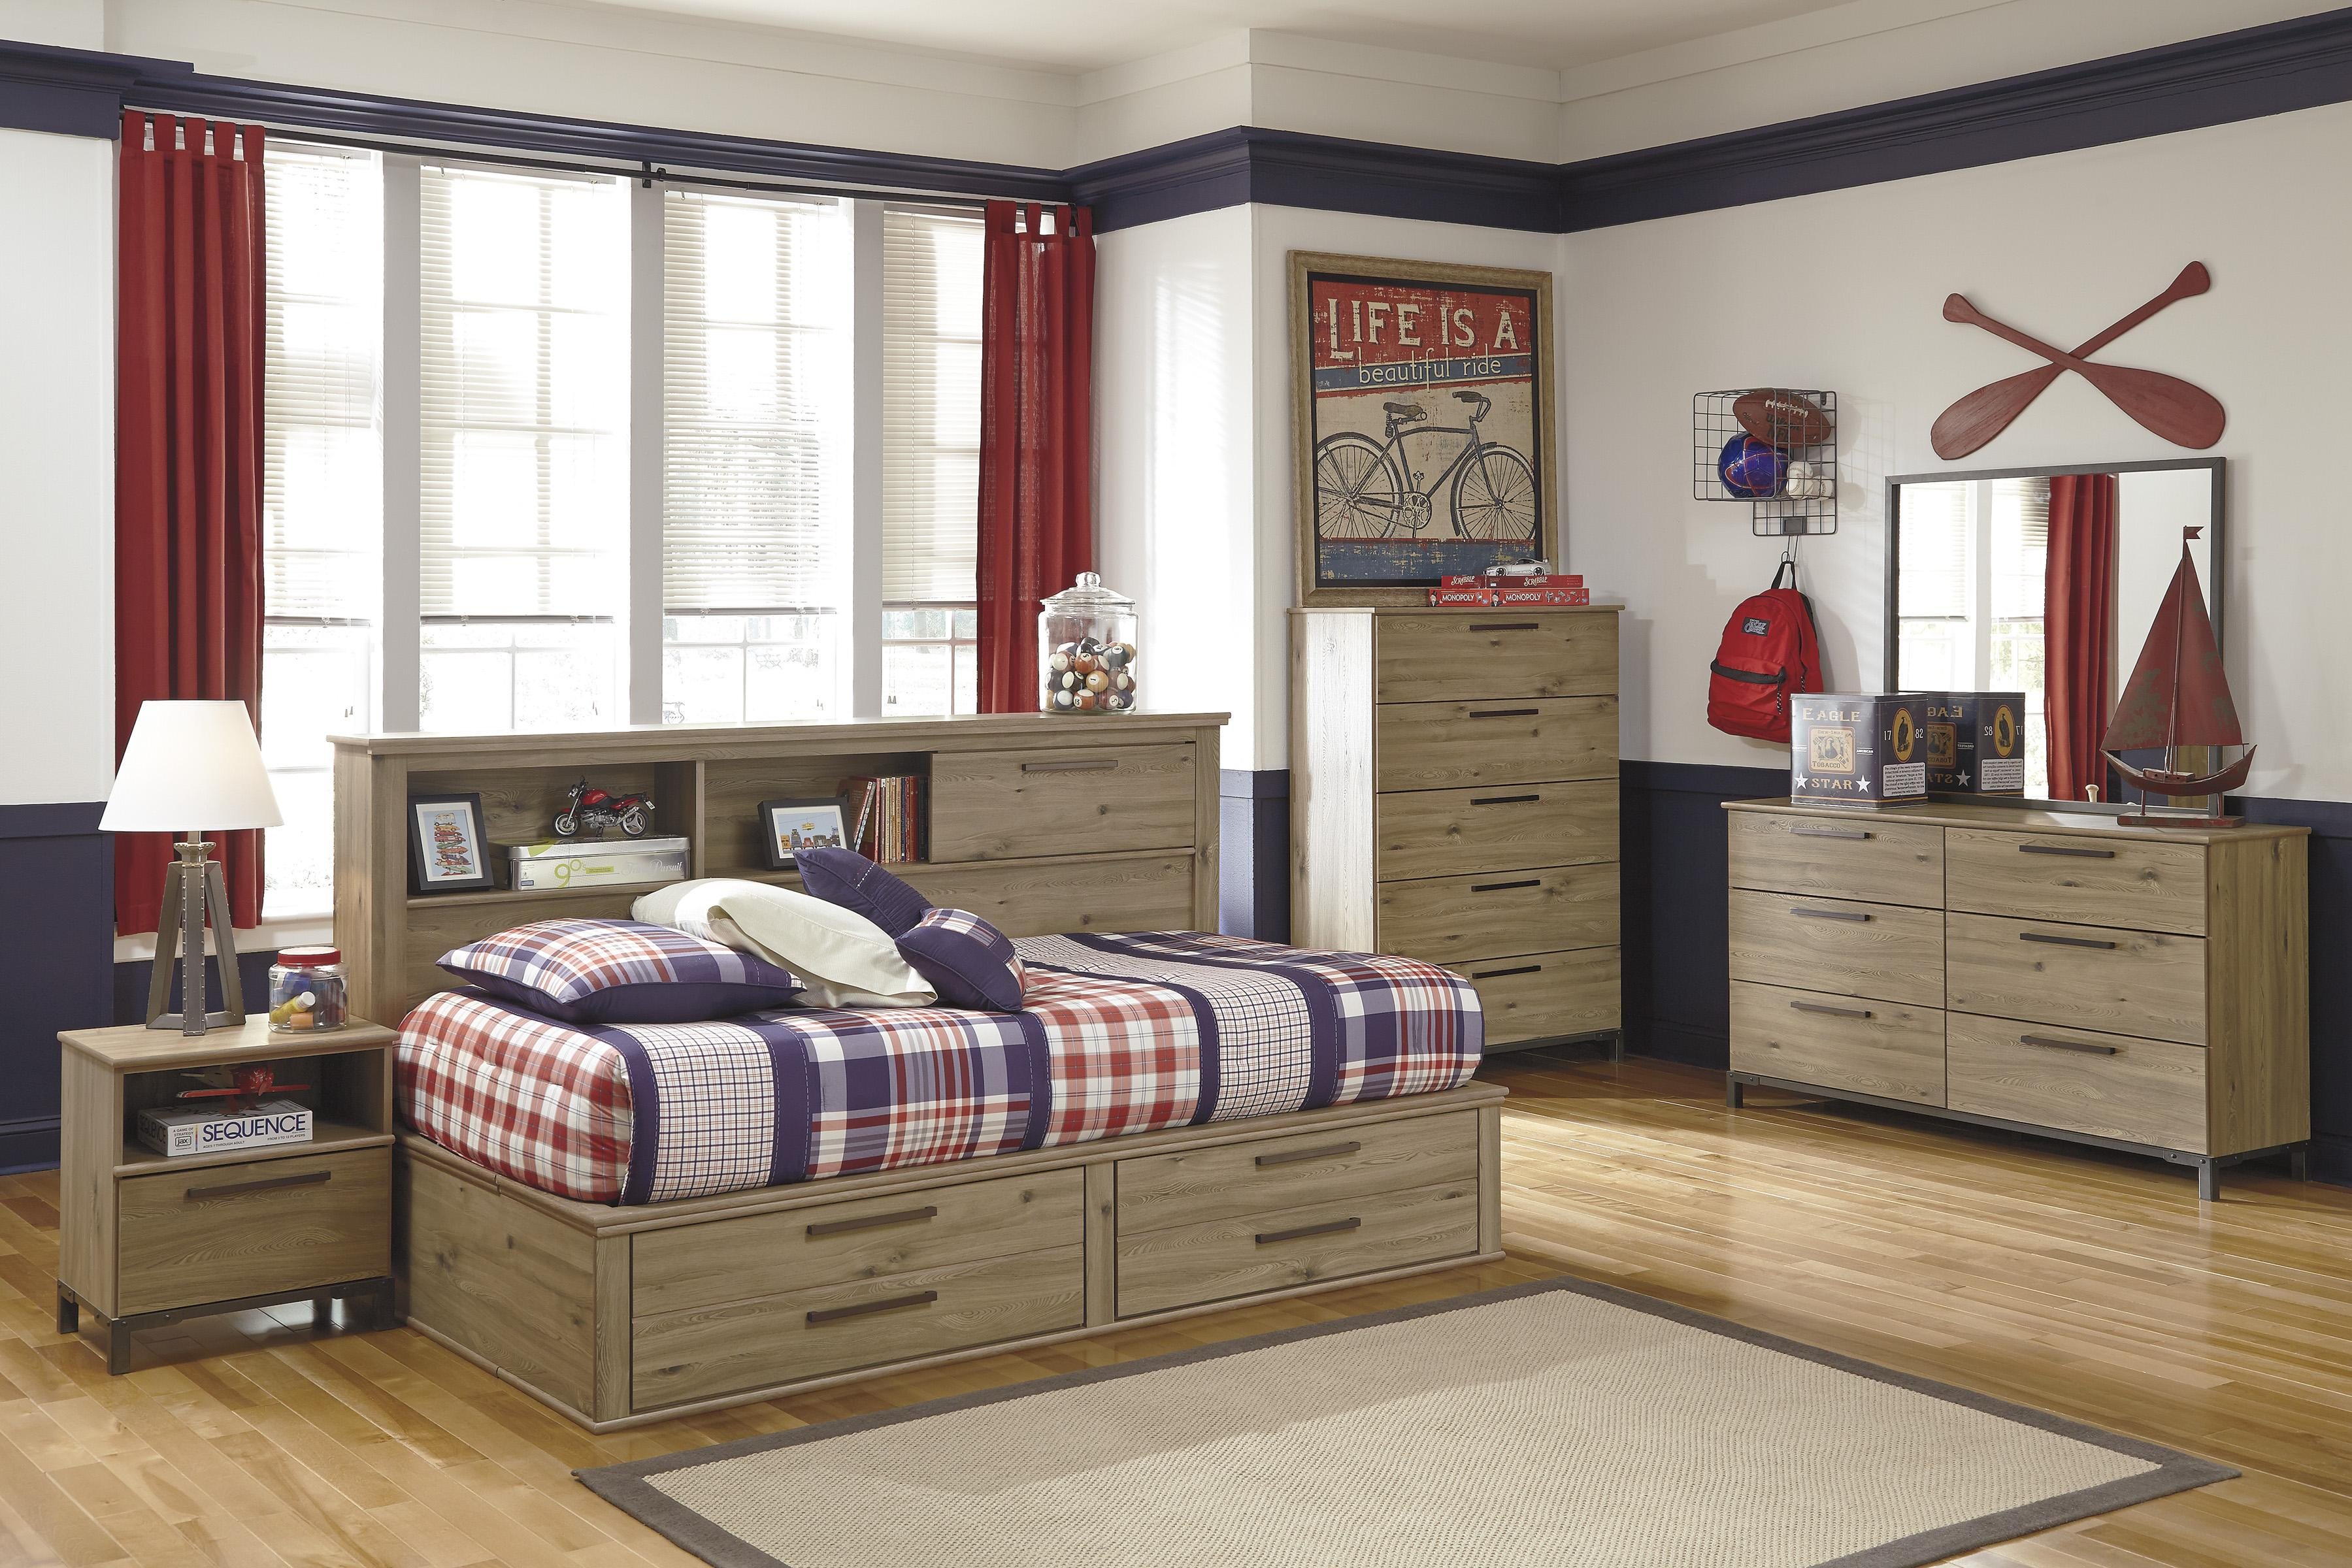 Signature Design by Ashley Dexifield Twin Bedroom Group - Item Number: B298 T Bedroom Group 4